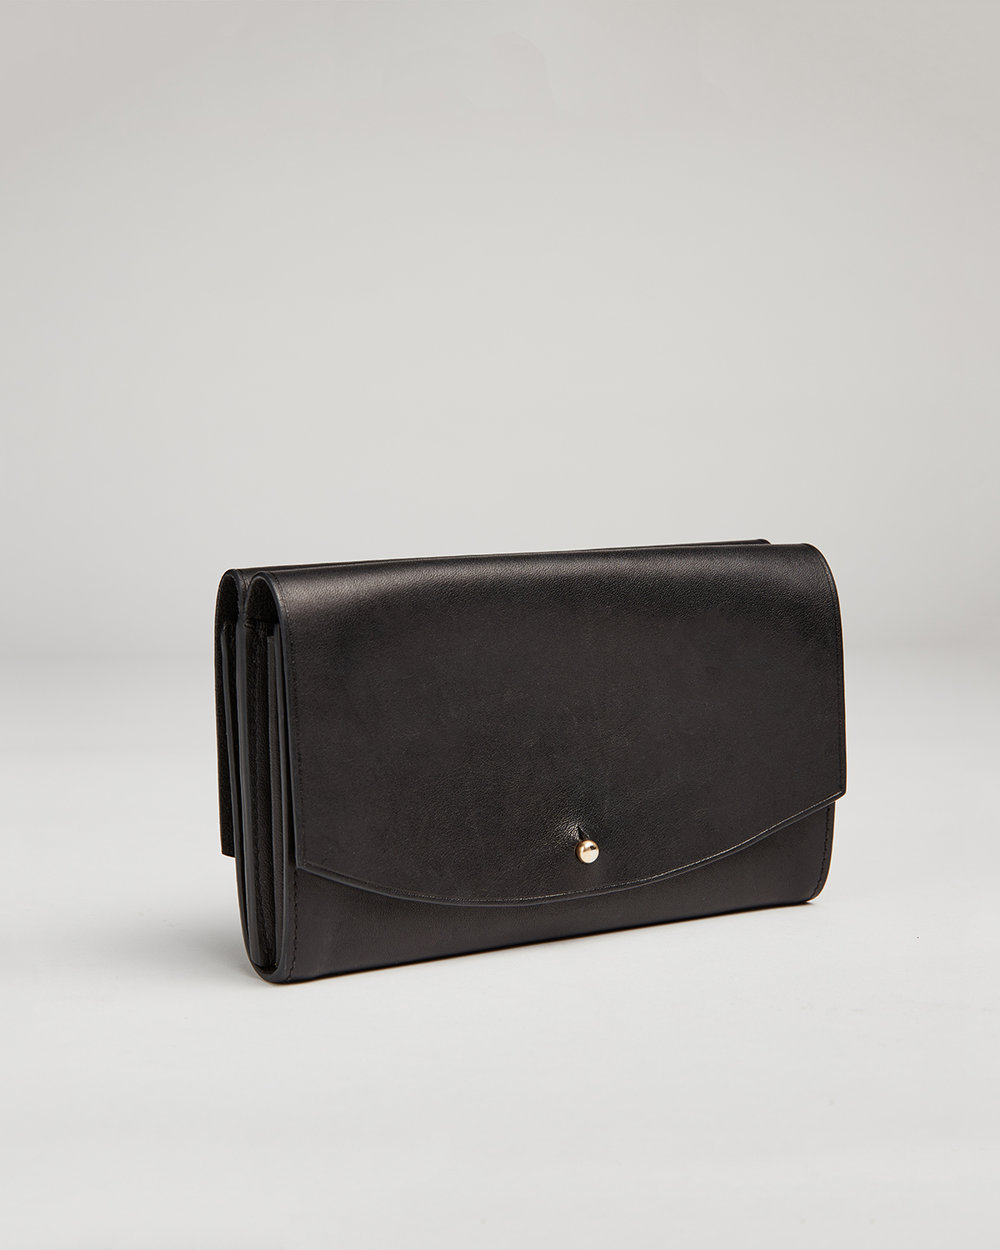 corie humble skagen wallet black double flap